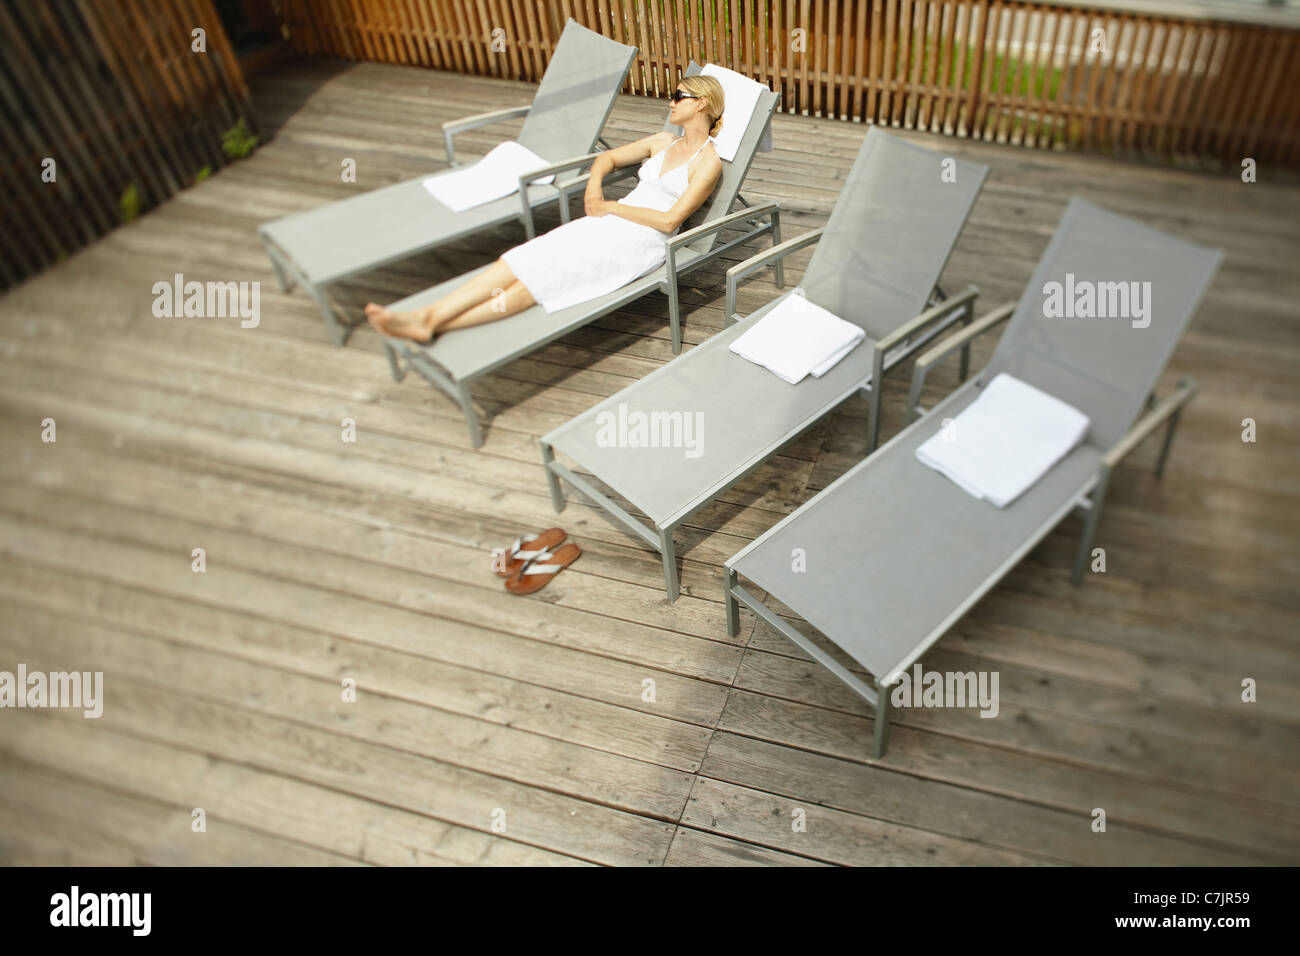 Woman Sunbathing In Lawn Chair